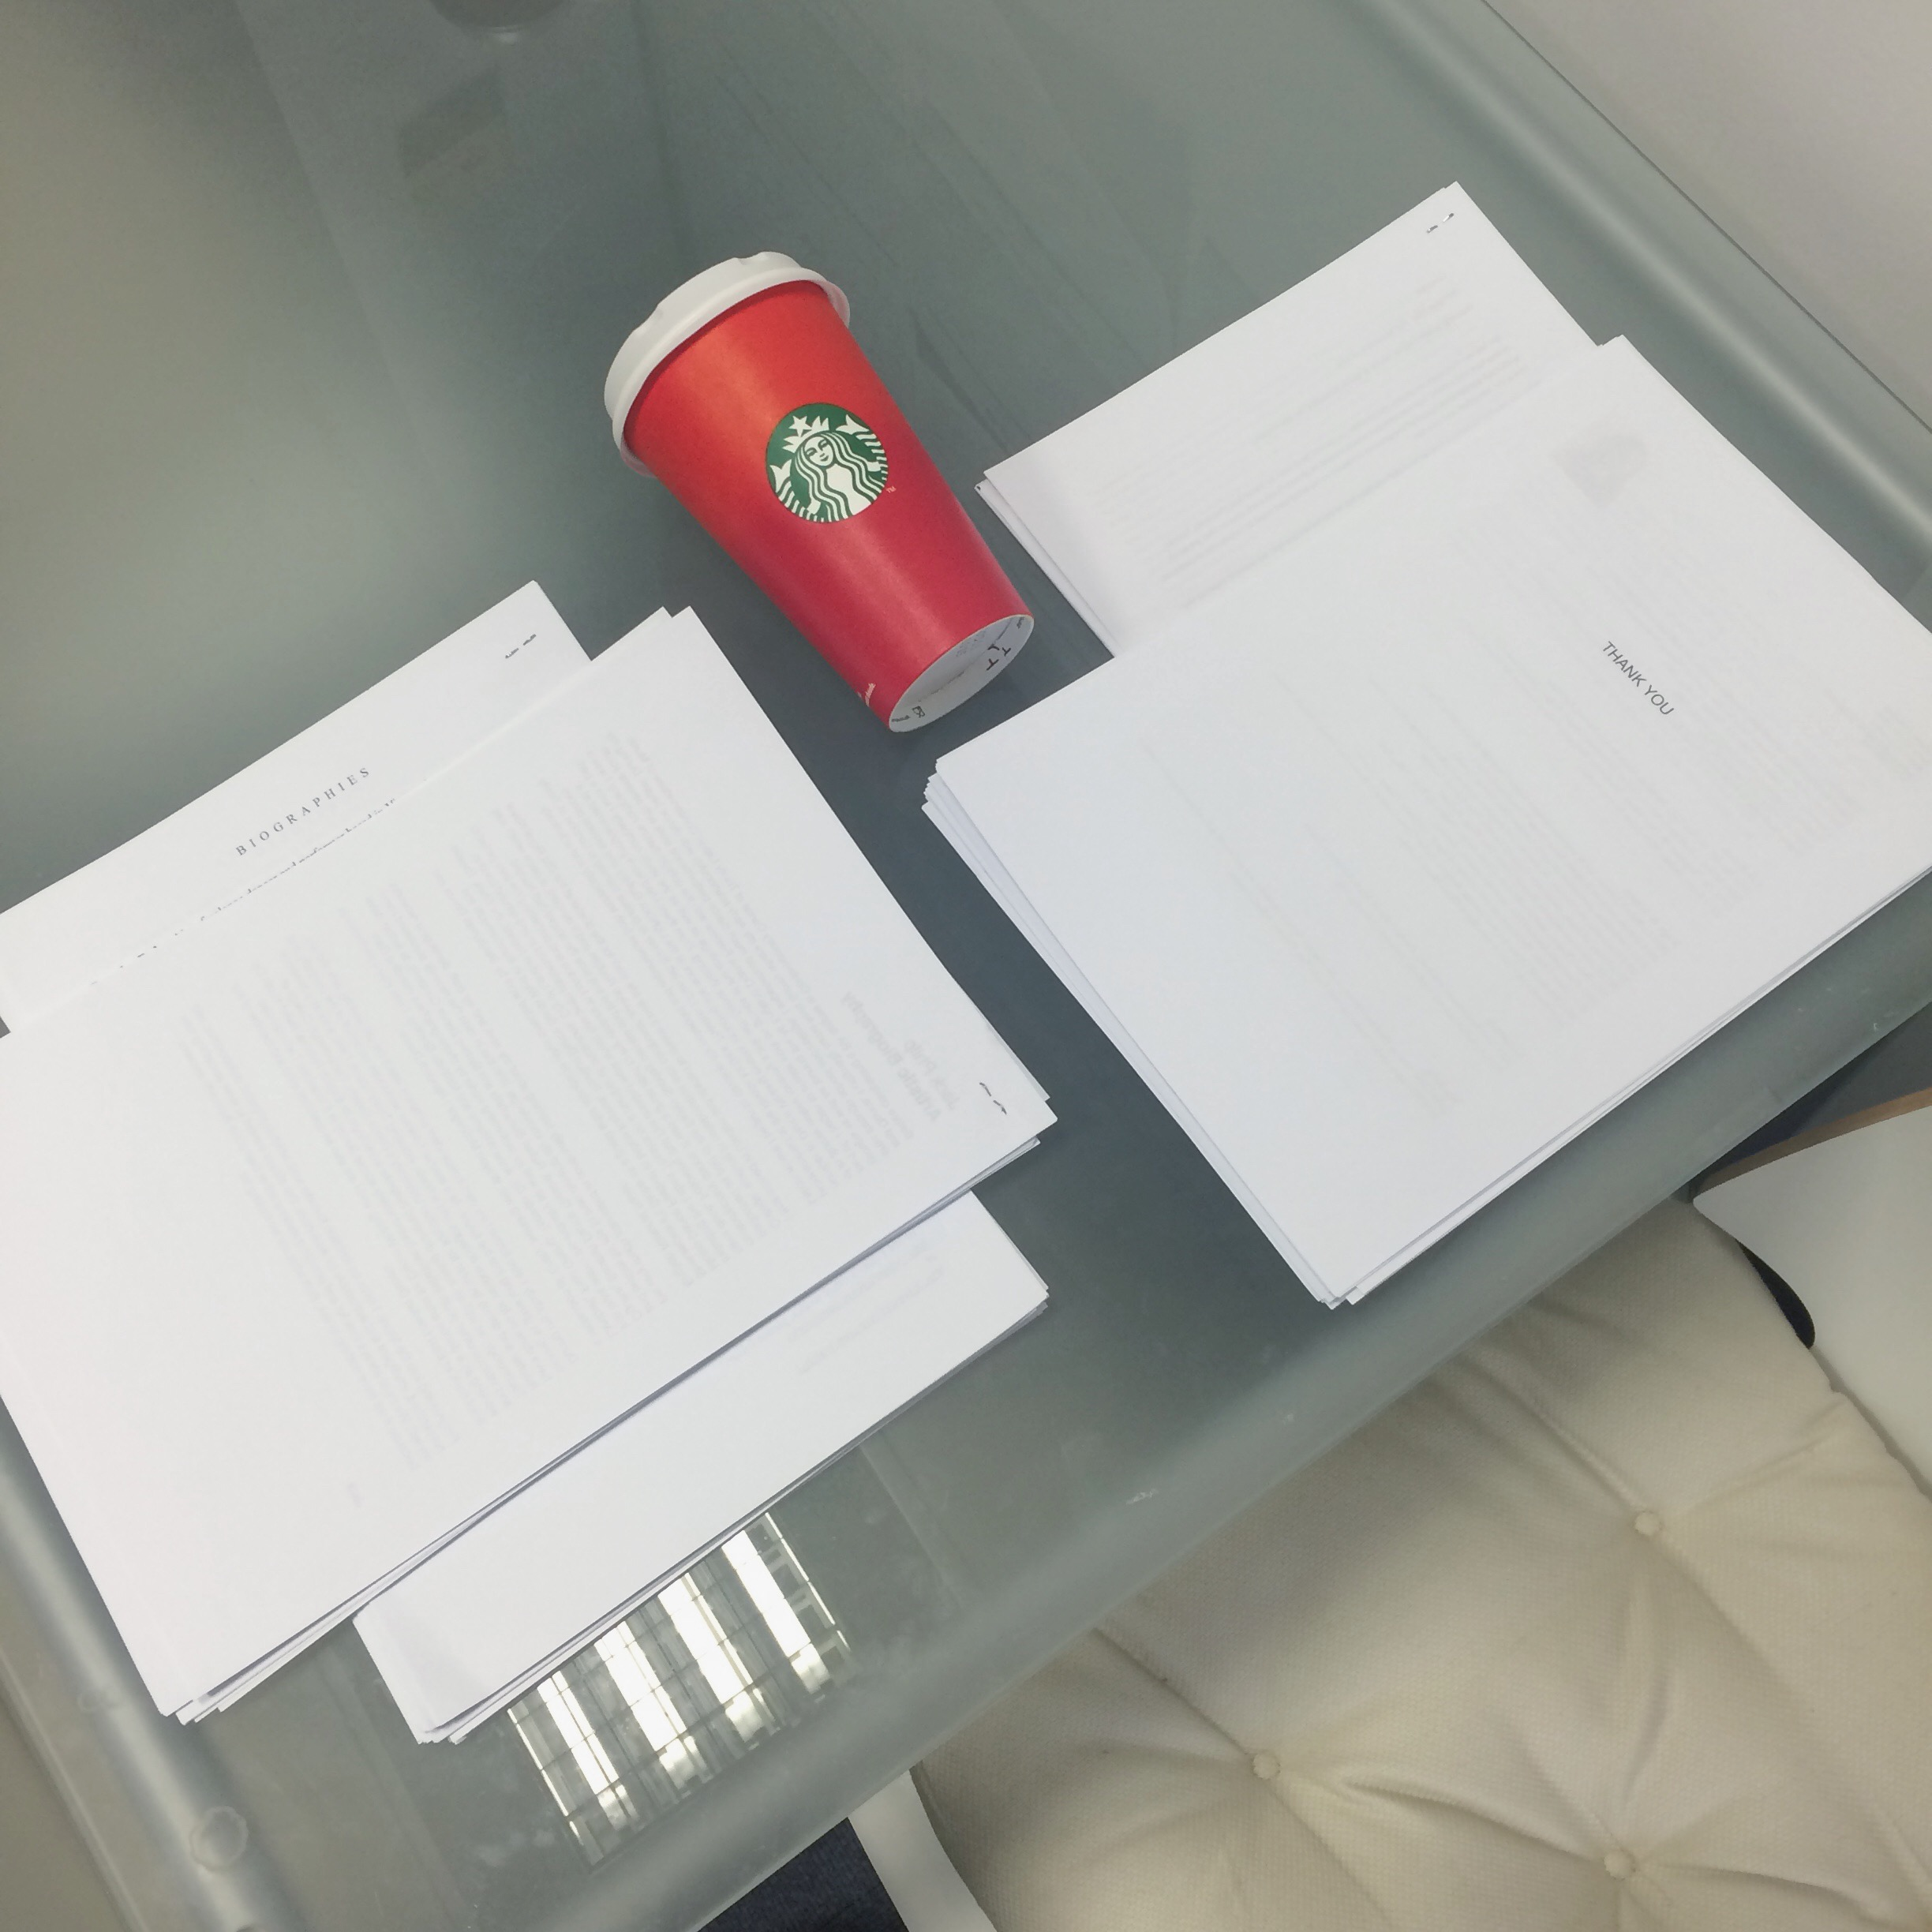 serendipity office signatures applications starbucks red cup cheer papers